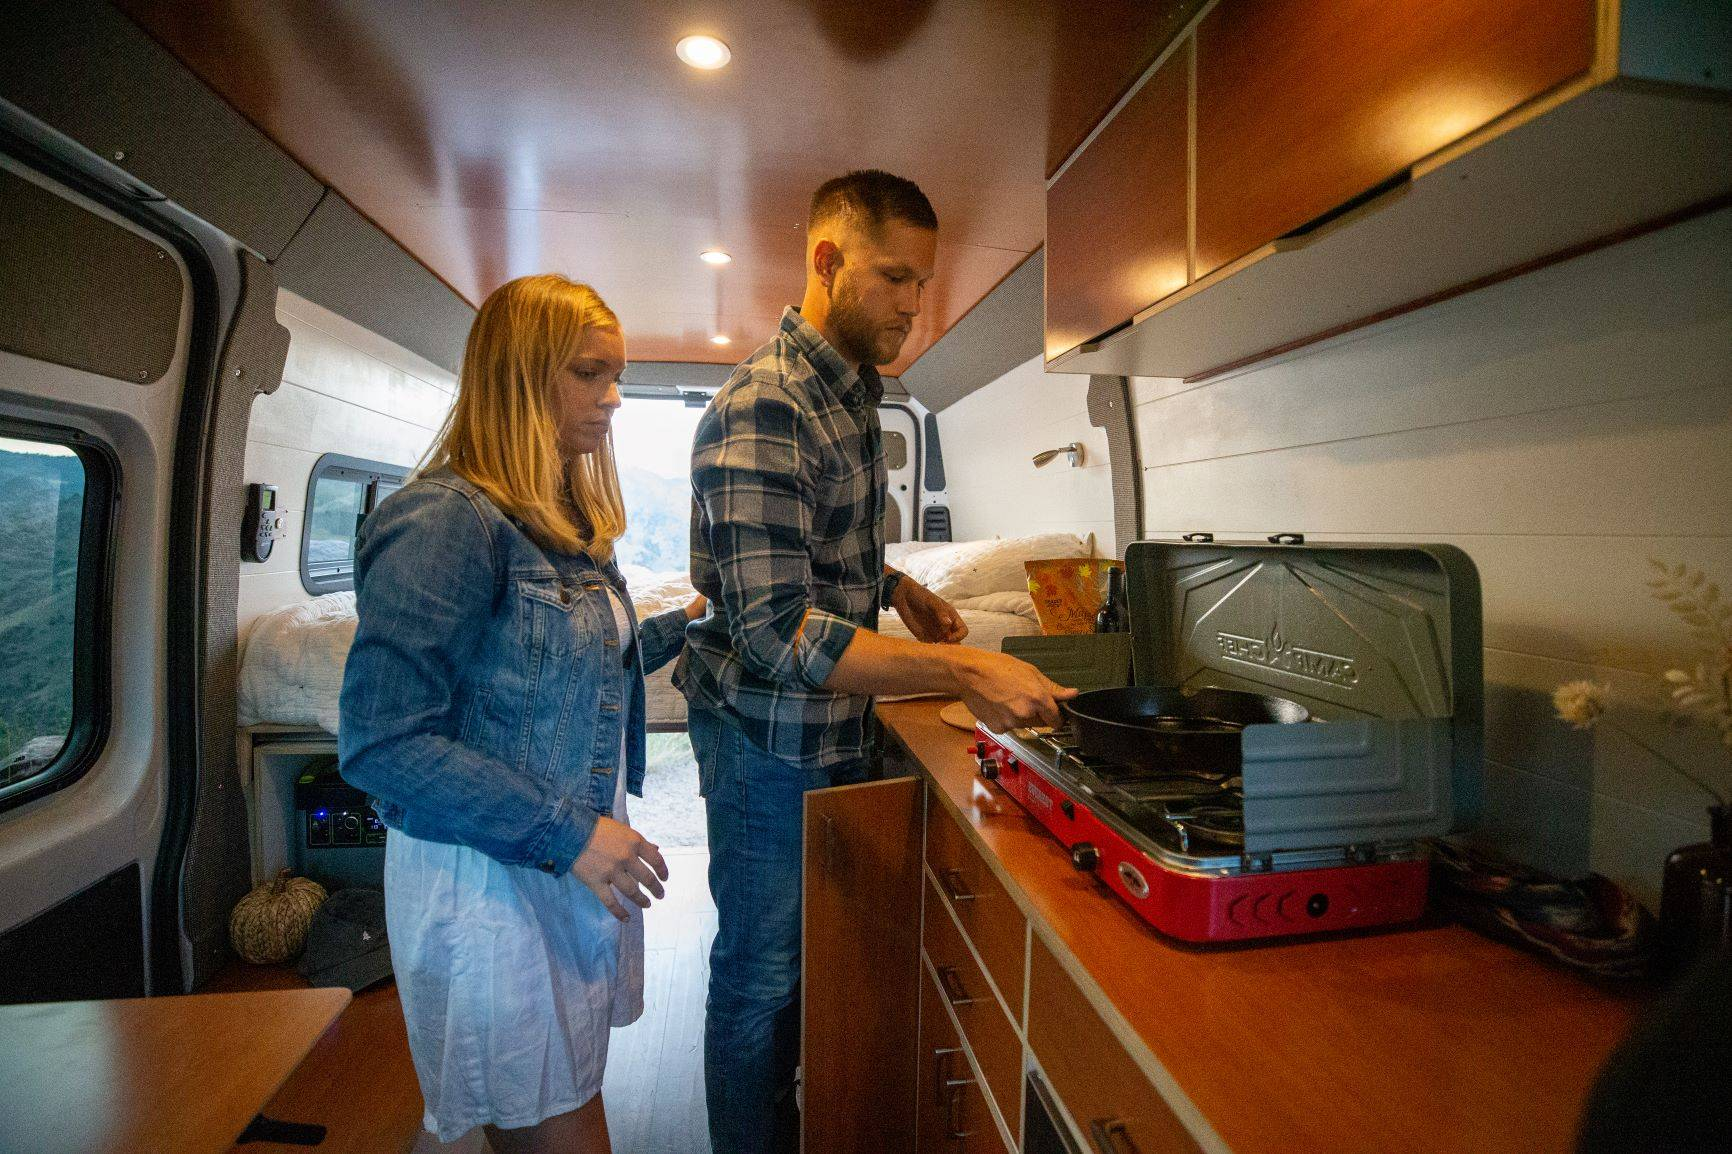 The Bivy - Sprinter 144 / ProMaster 136 Van Conversion - Man and Woman Cooking on Camp Stove in Kitchen Area - The Vansmith